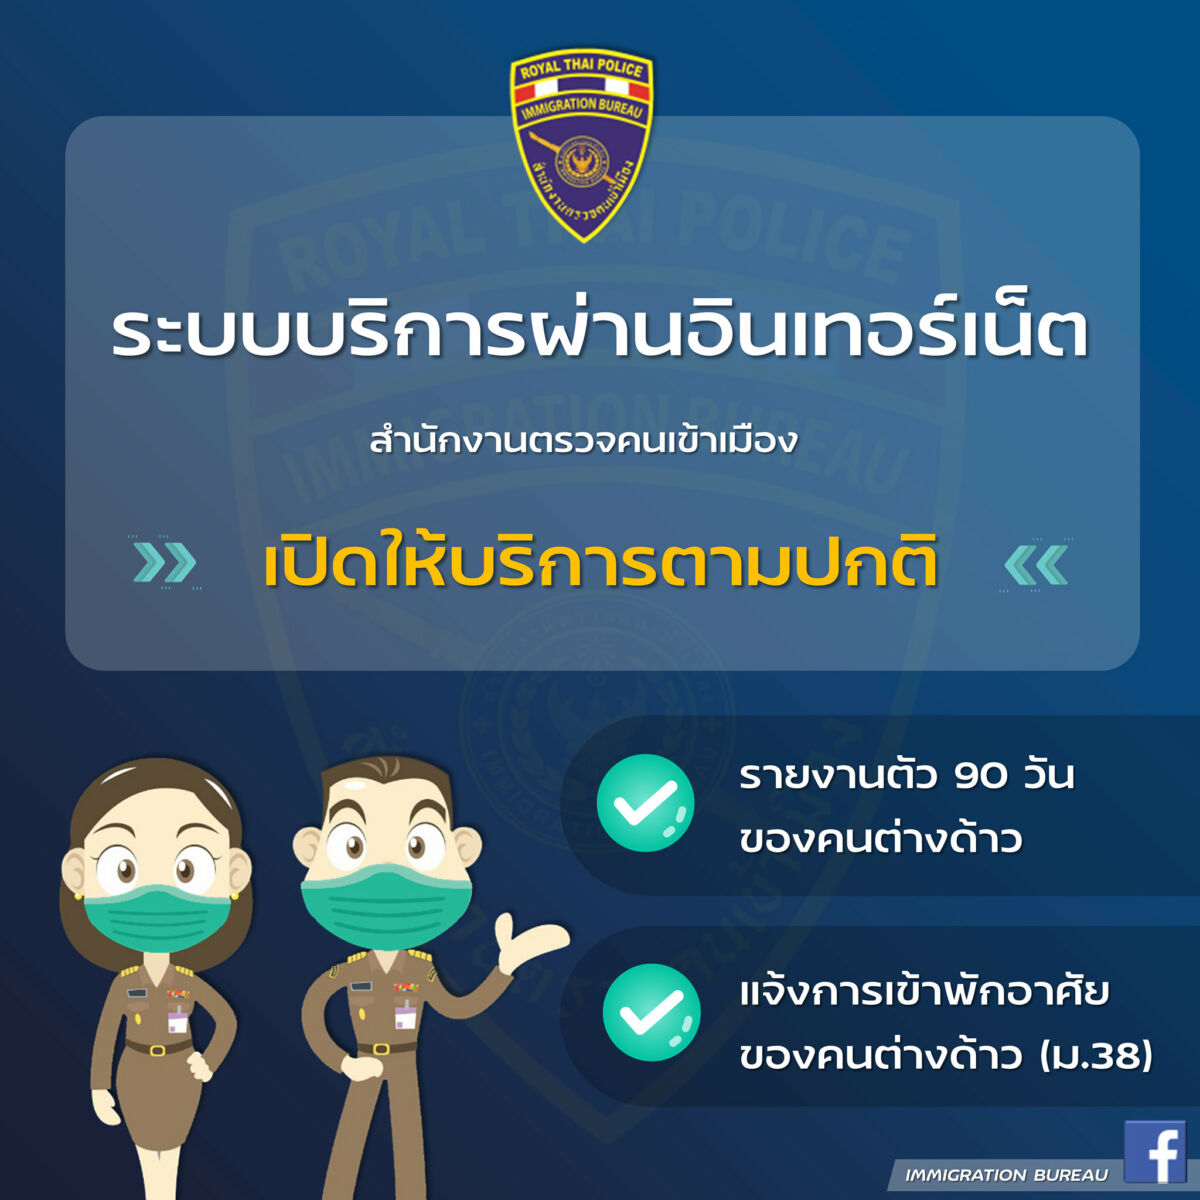 Thai Immigration says online system for 90 day reports is back up and running | News by Thaiger